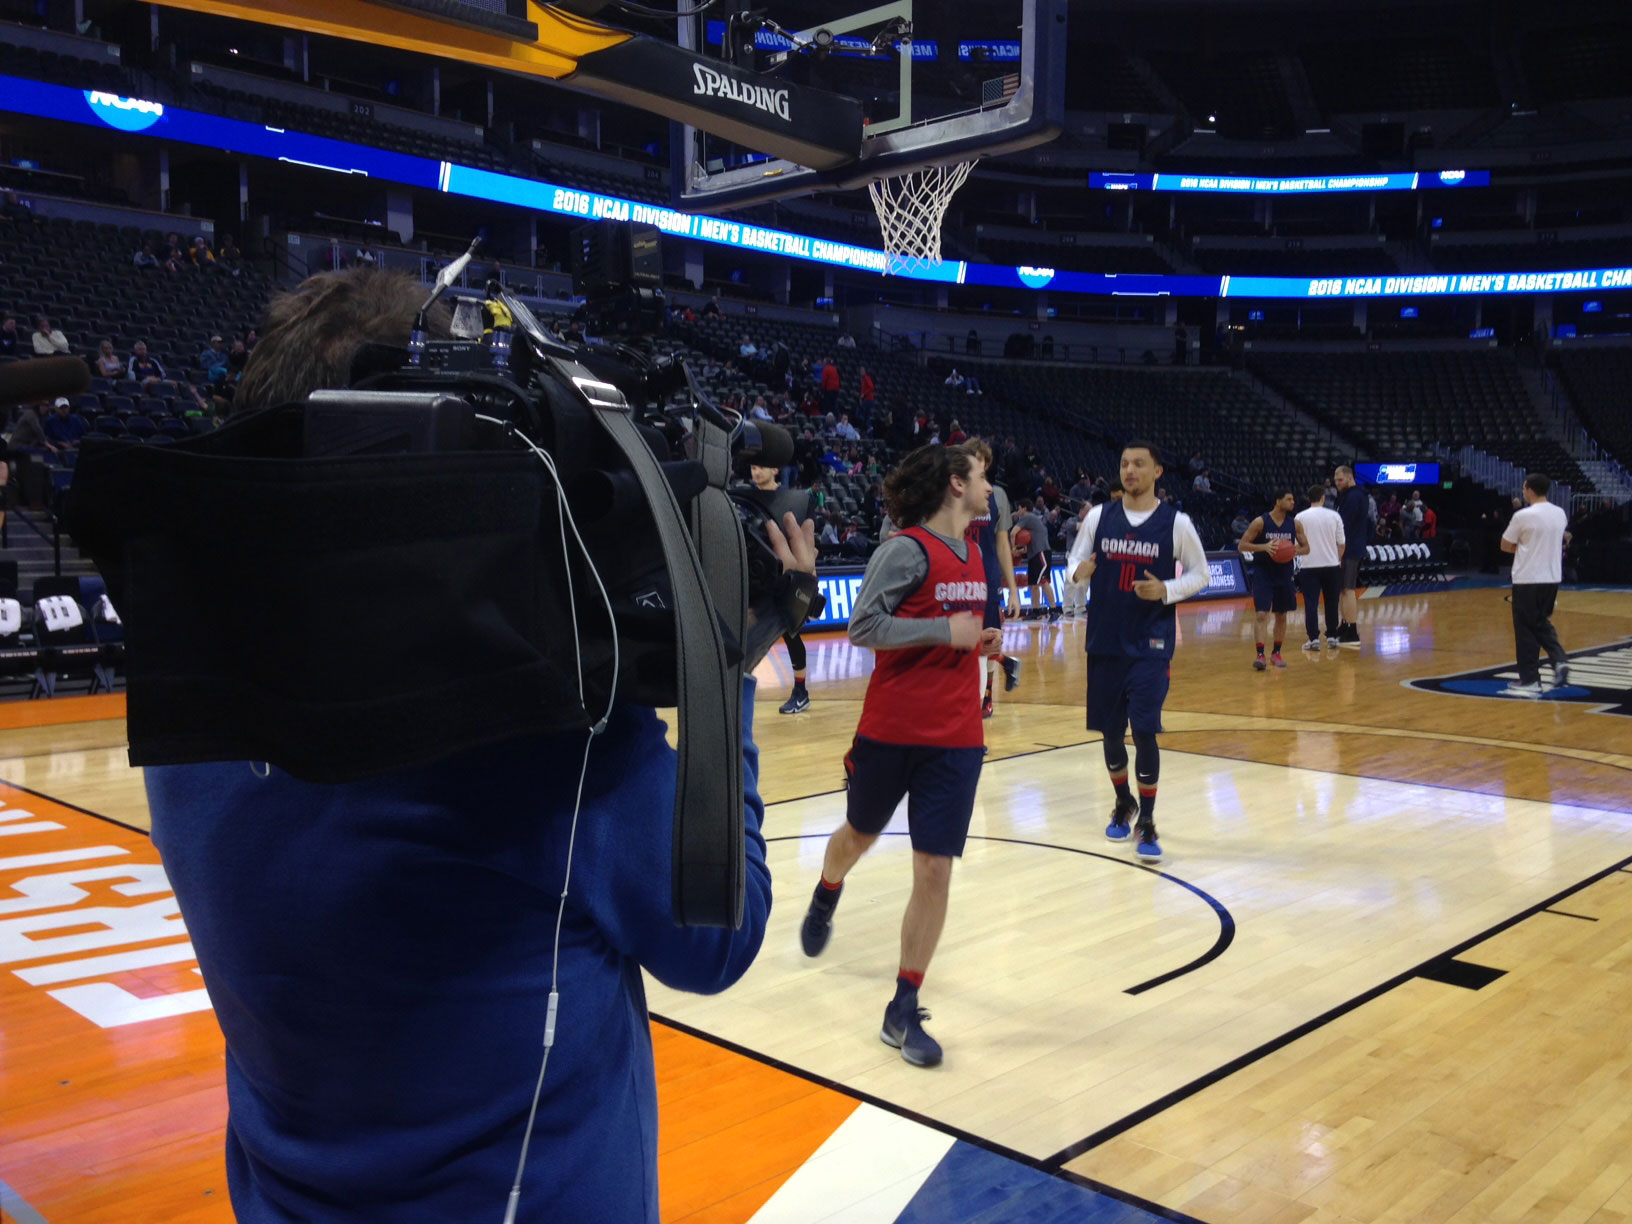 CBS4 photojournalist David Wille getting video of Gonzaga practicing (credit: CBS)